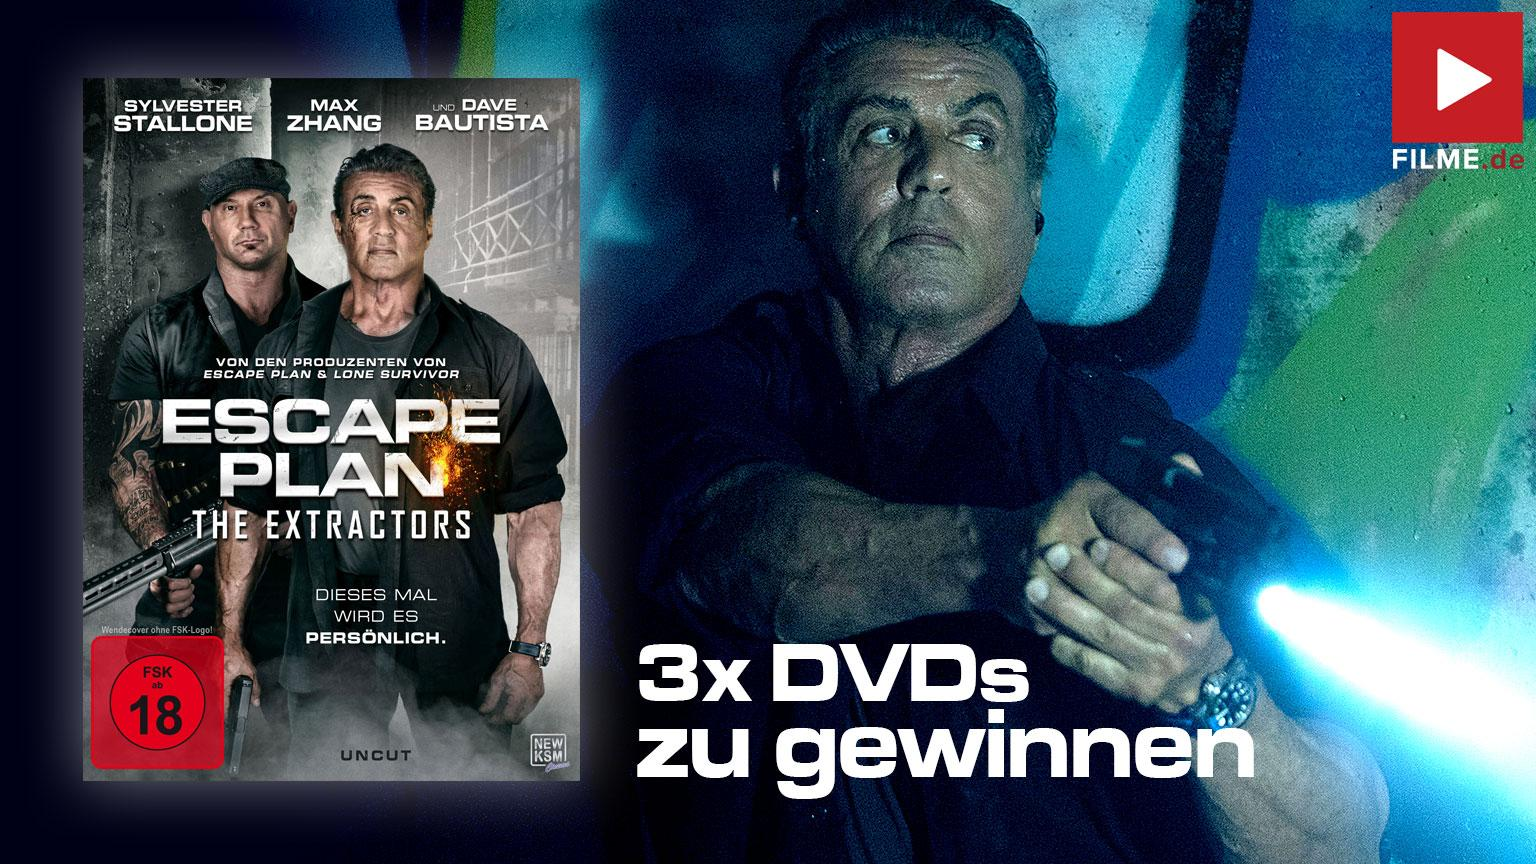 Escape Plan The Extractors Gewinnspiel